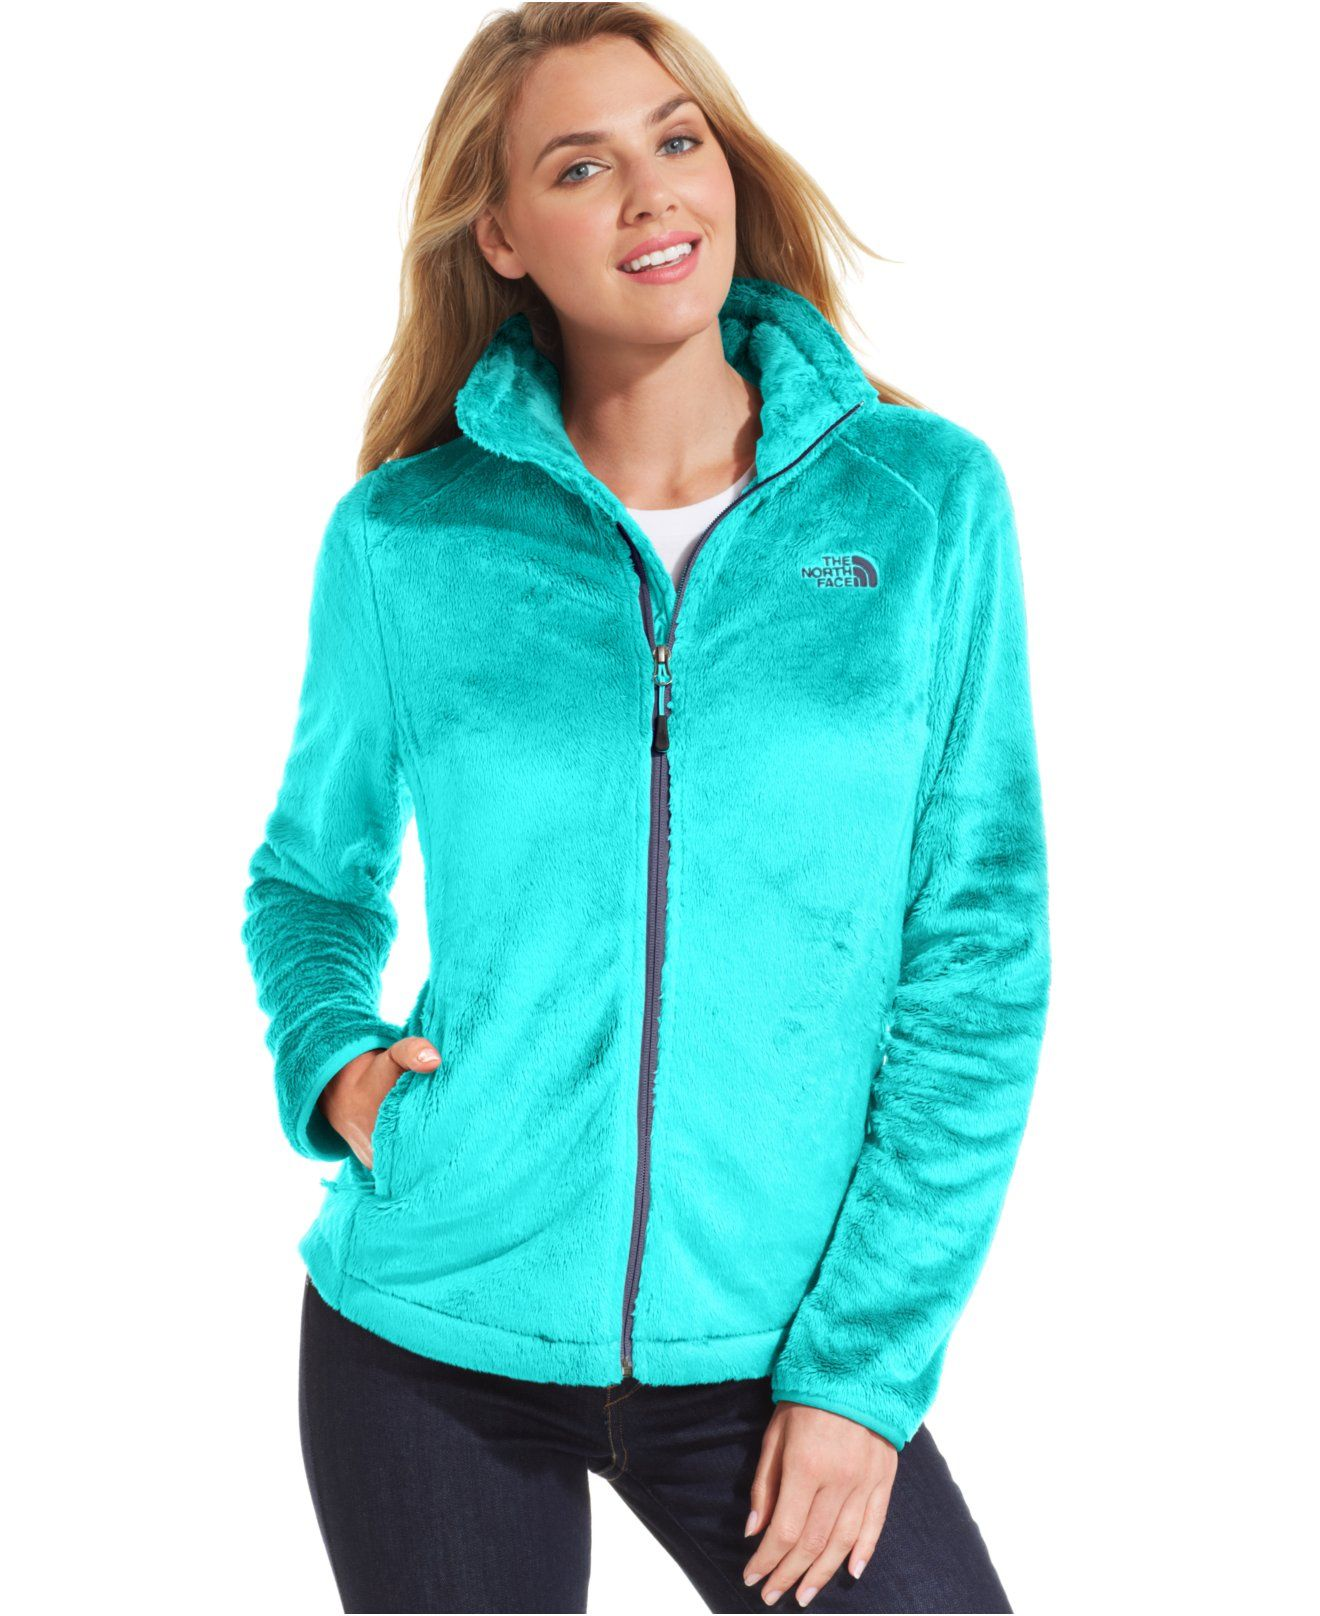 The North Face Osito 2 Fleece Jacket The North Face Jackets Coats Women Macy S North Face Jacket Jackets Blazer Jackets For Women [ 1616 x 1320 Pixel ]